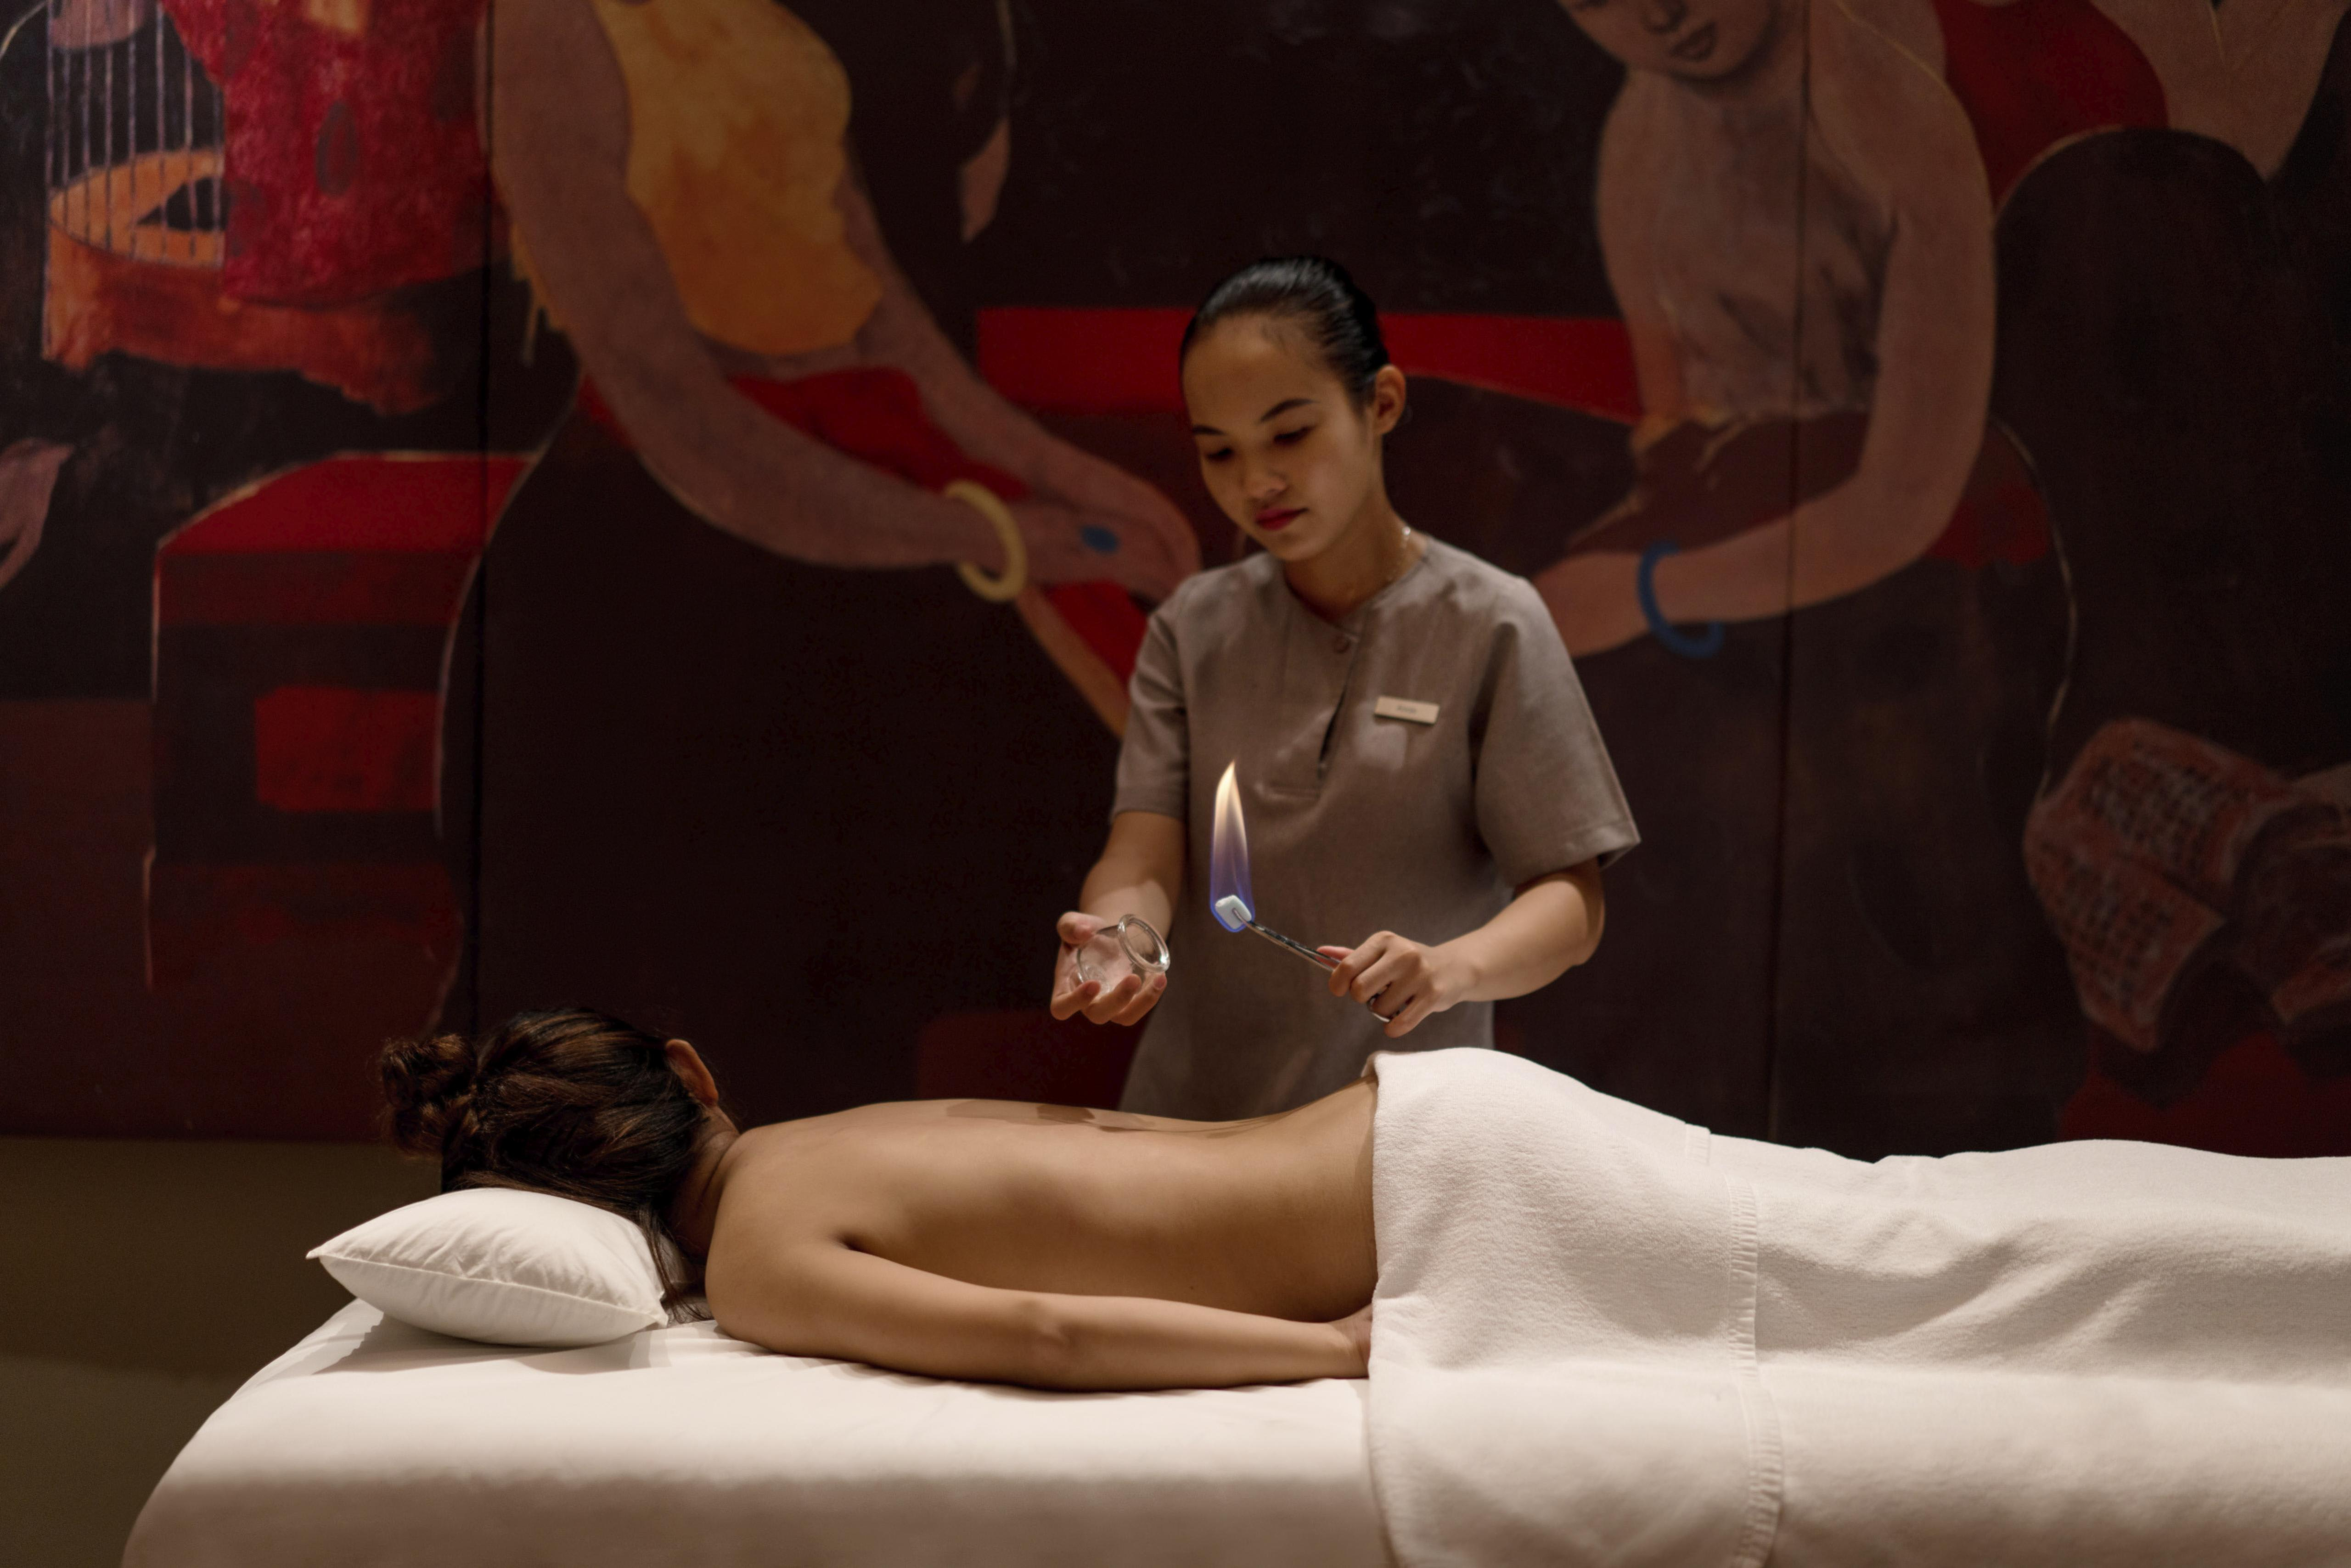 woman face down on massage table, masseuse